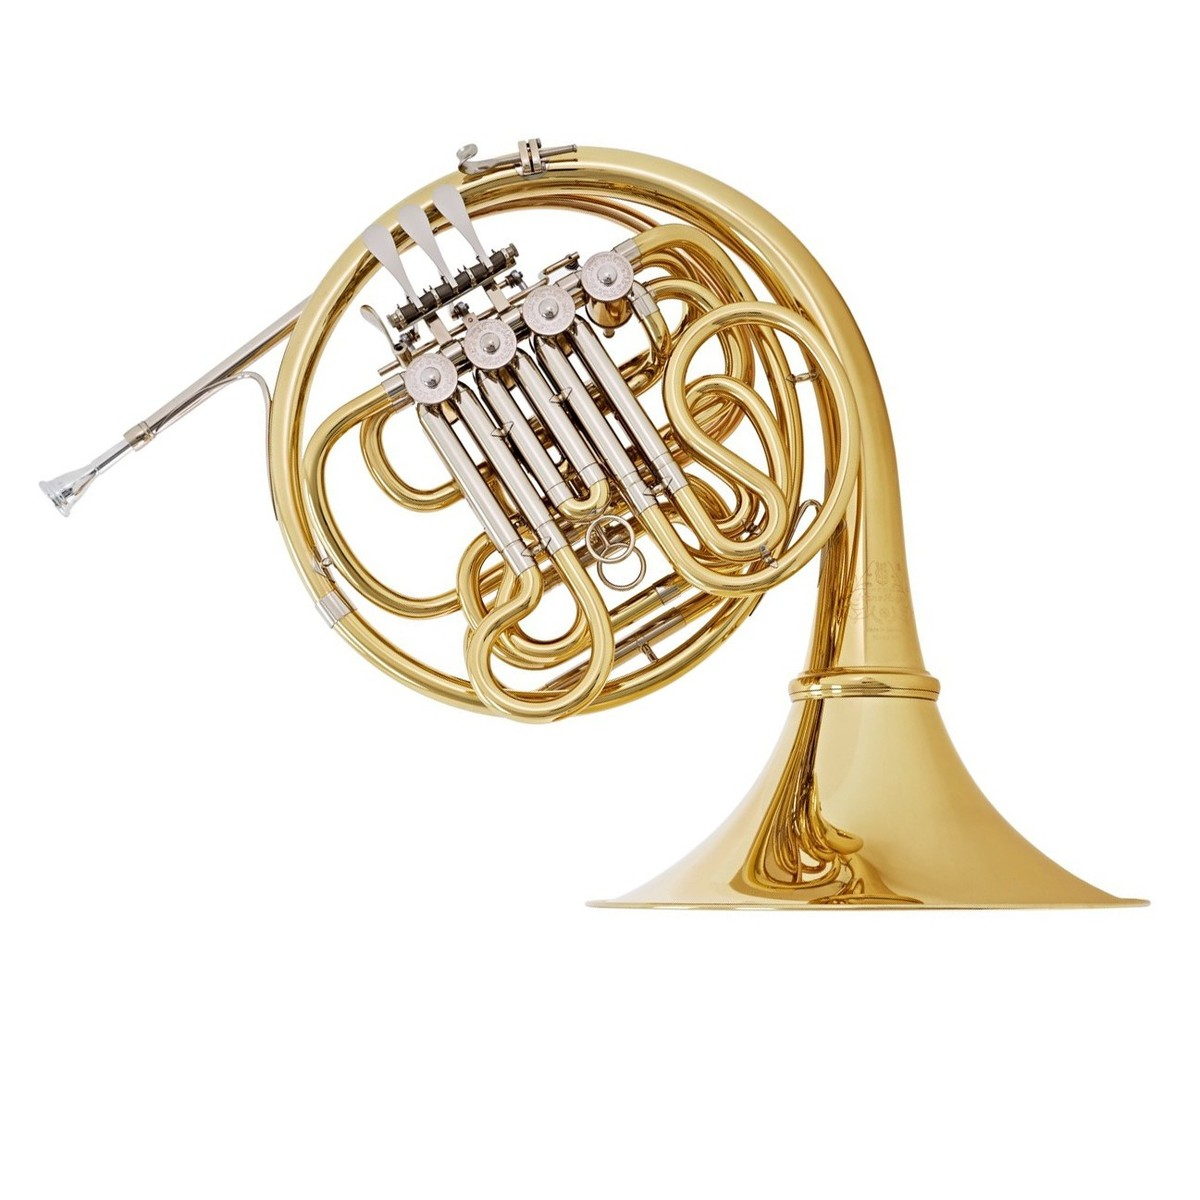 hans hoyer 801a 1 0 double french horn detachable bell at gear4music